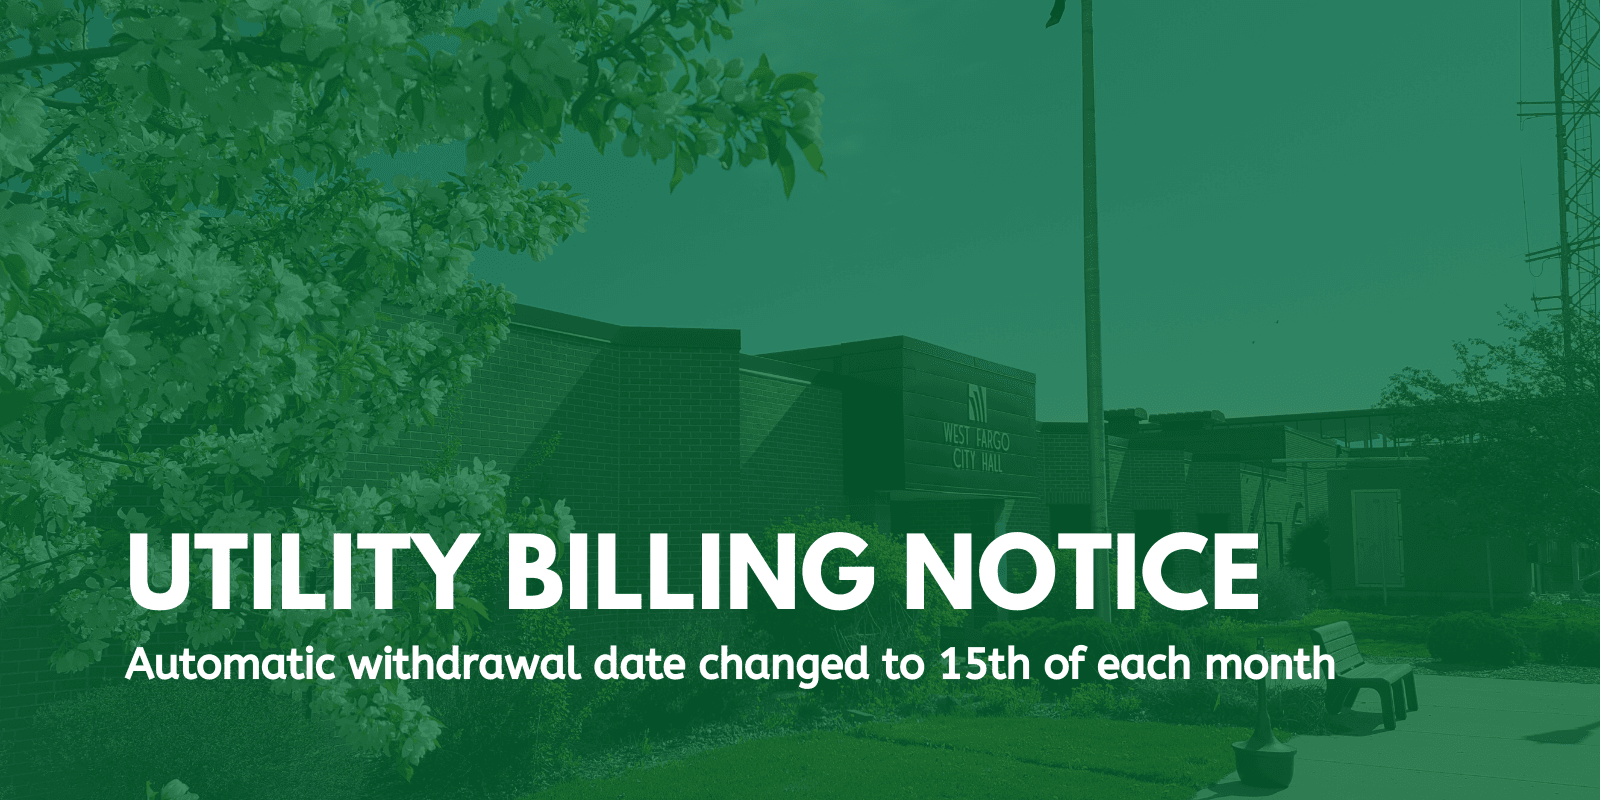 Utility billing notice - date of withdrawal changed